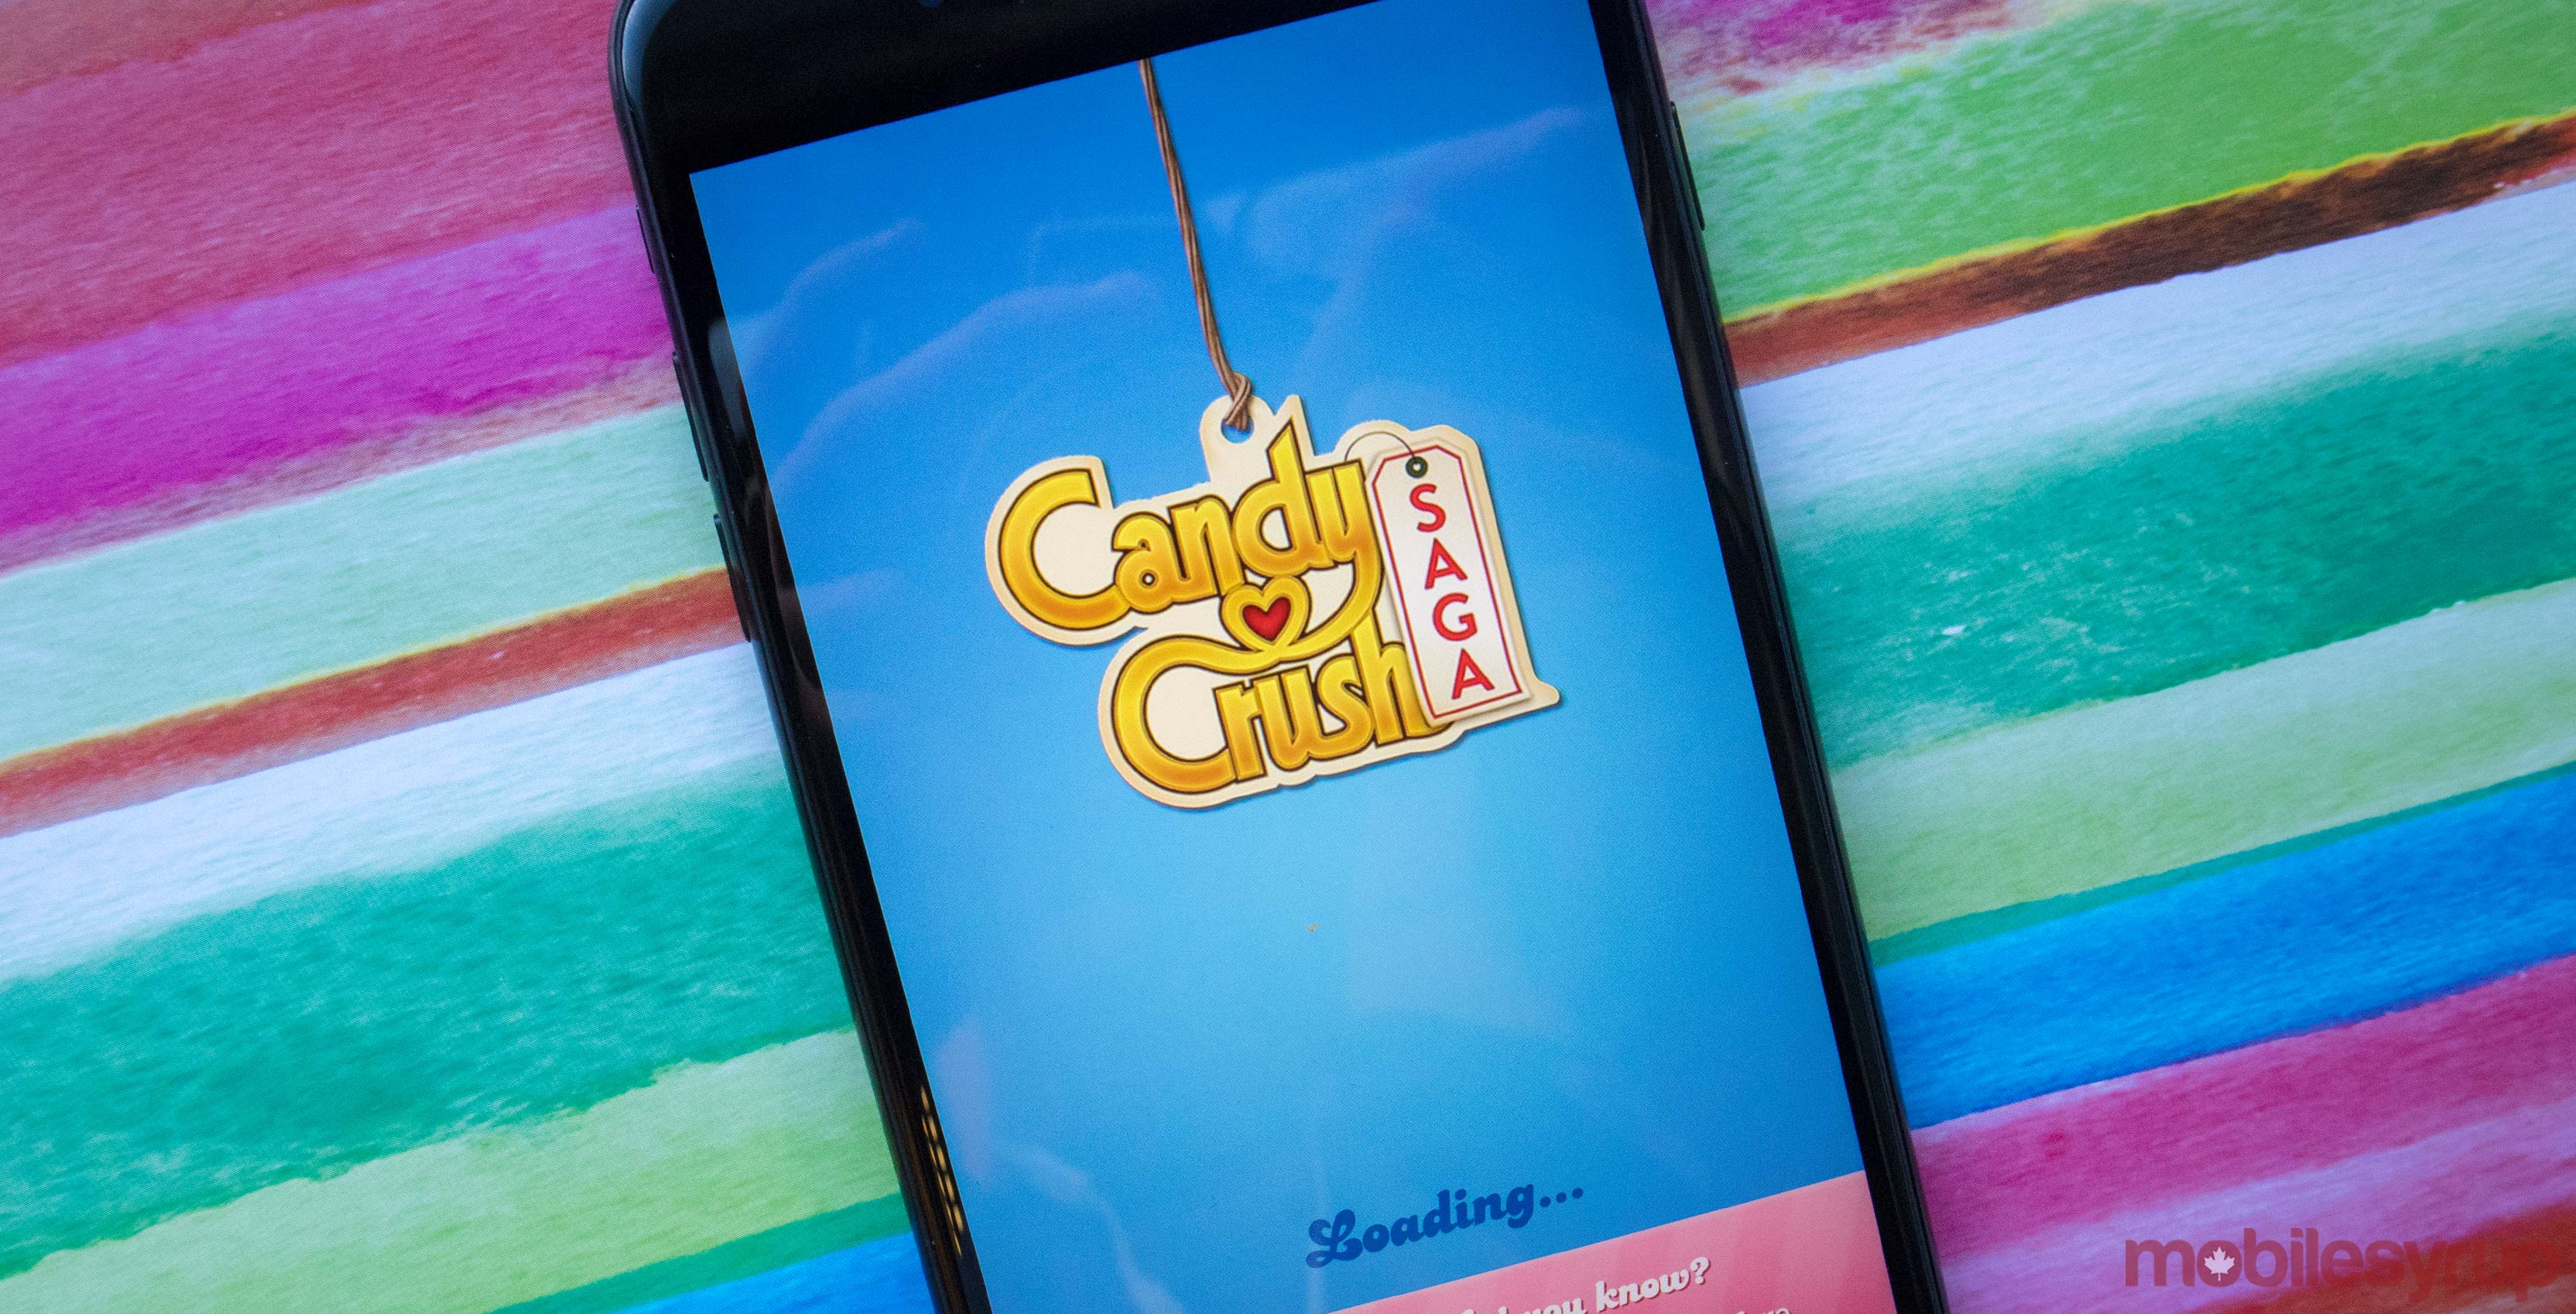 Candy Crush Saga reportedly most-downloaded iOS game of all time